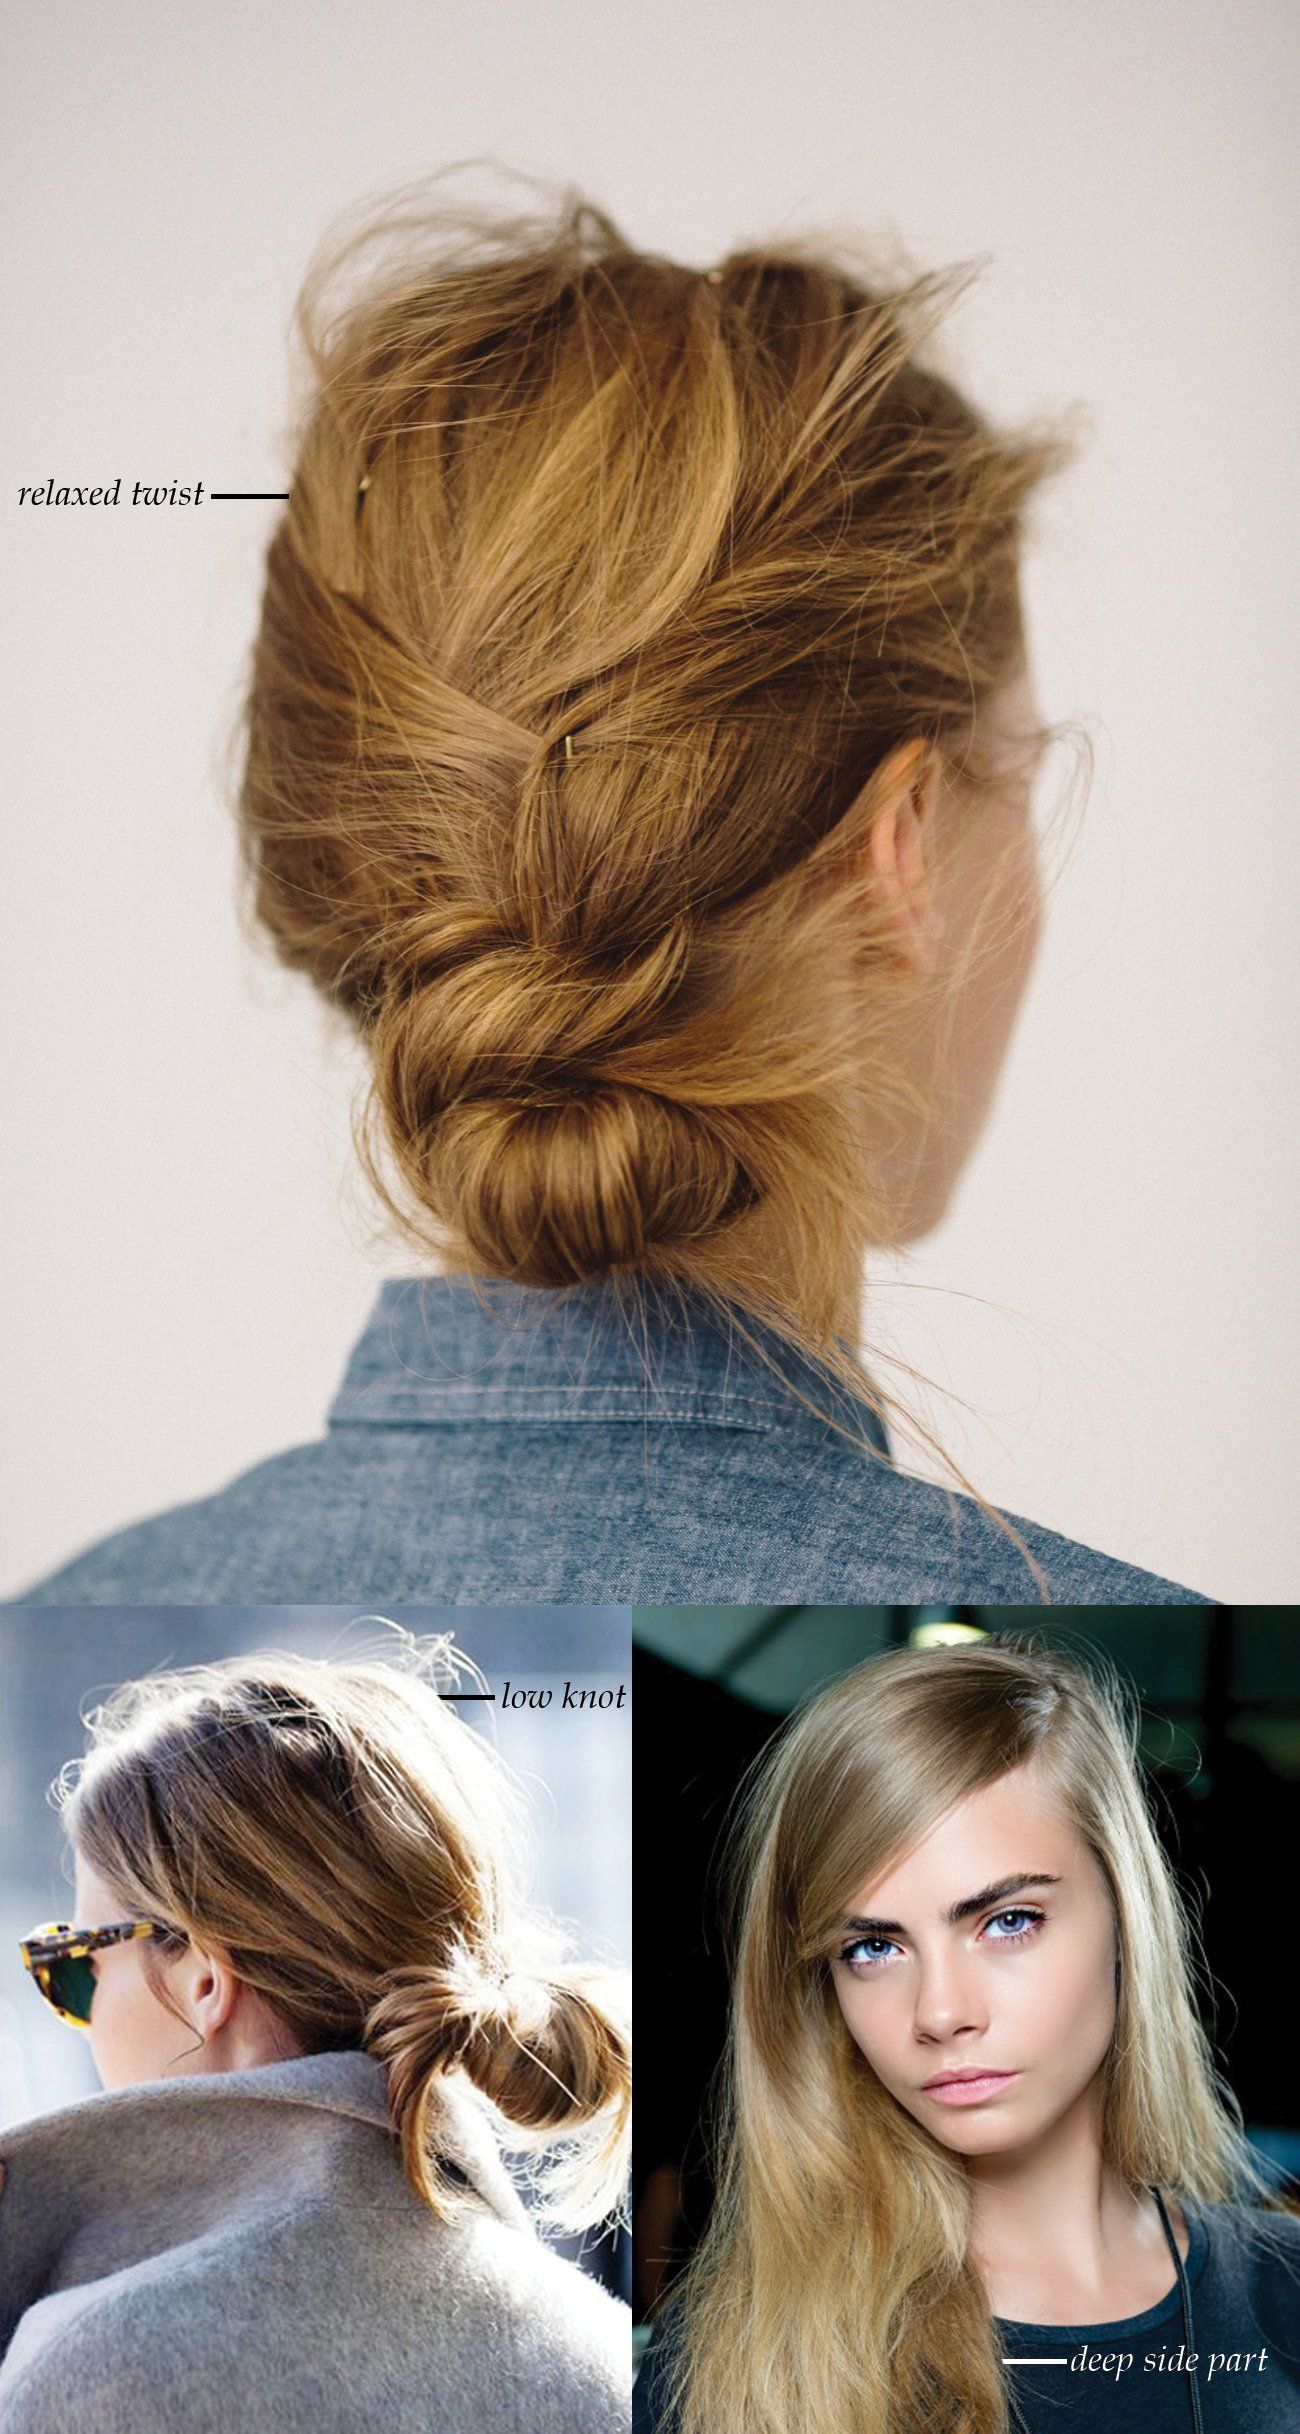 9 Easy And Great Fall Hair Styles #hair